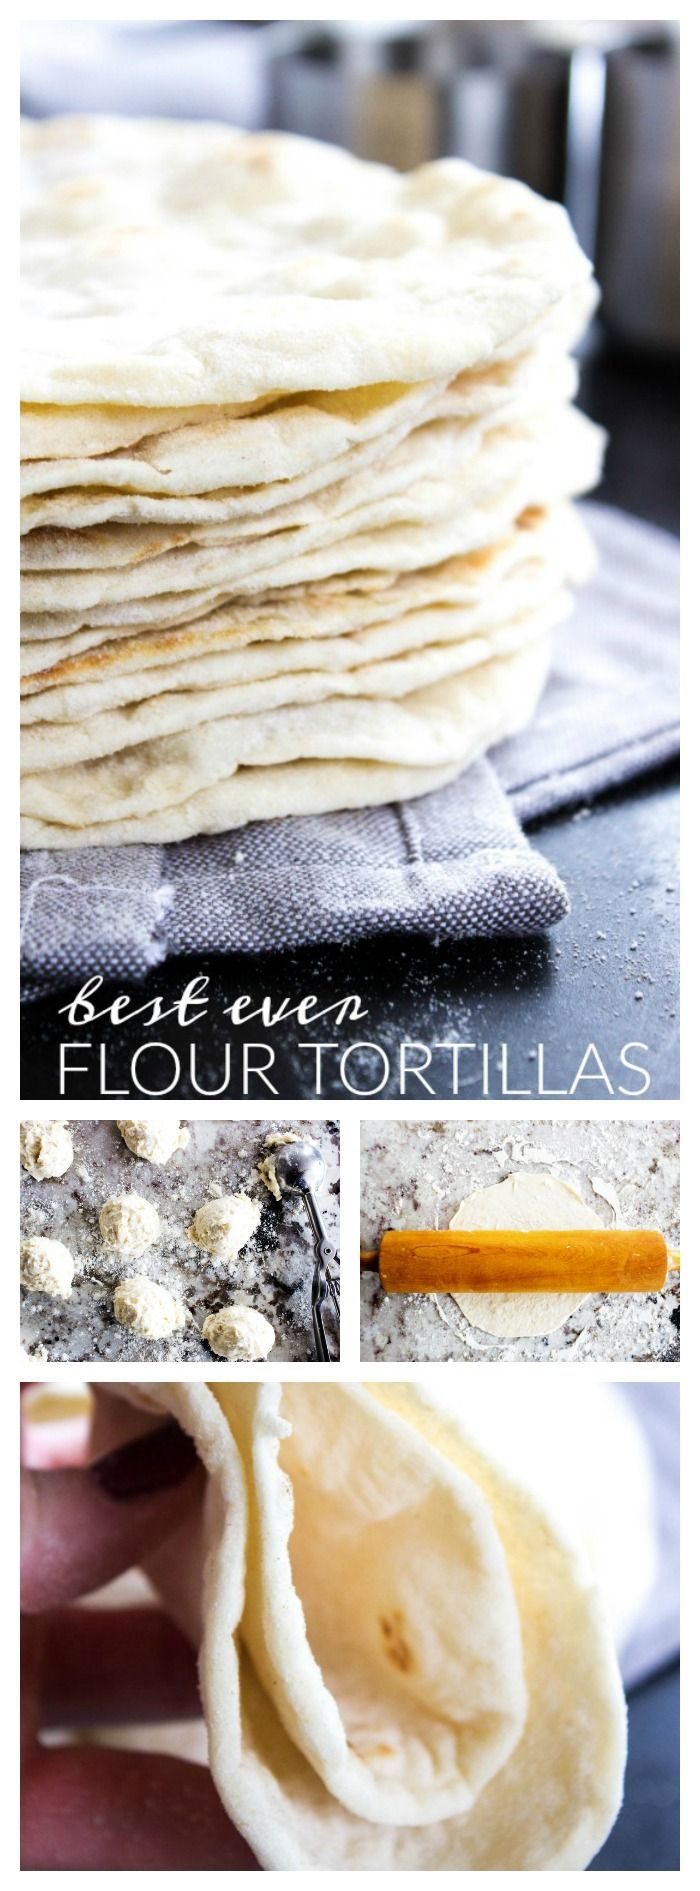 332 best RECIPES Mexican and Tex Mex Flavors! images on Pinterest ...